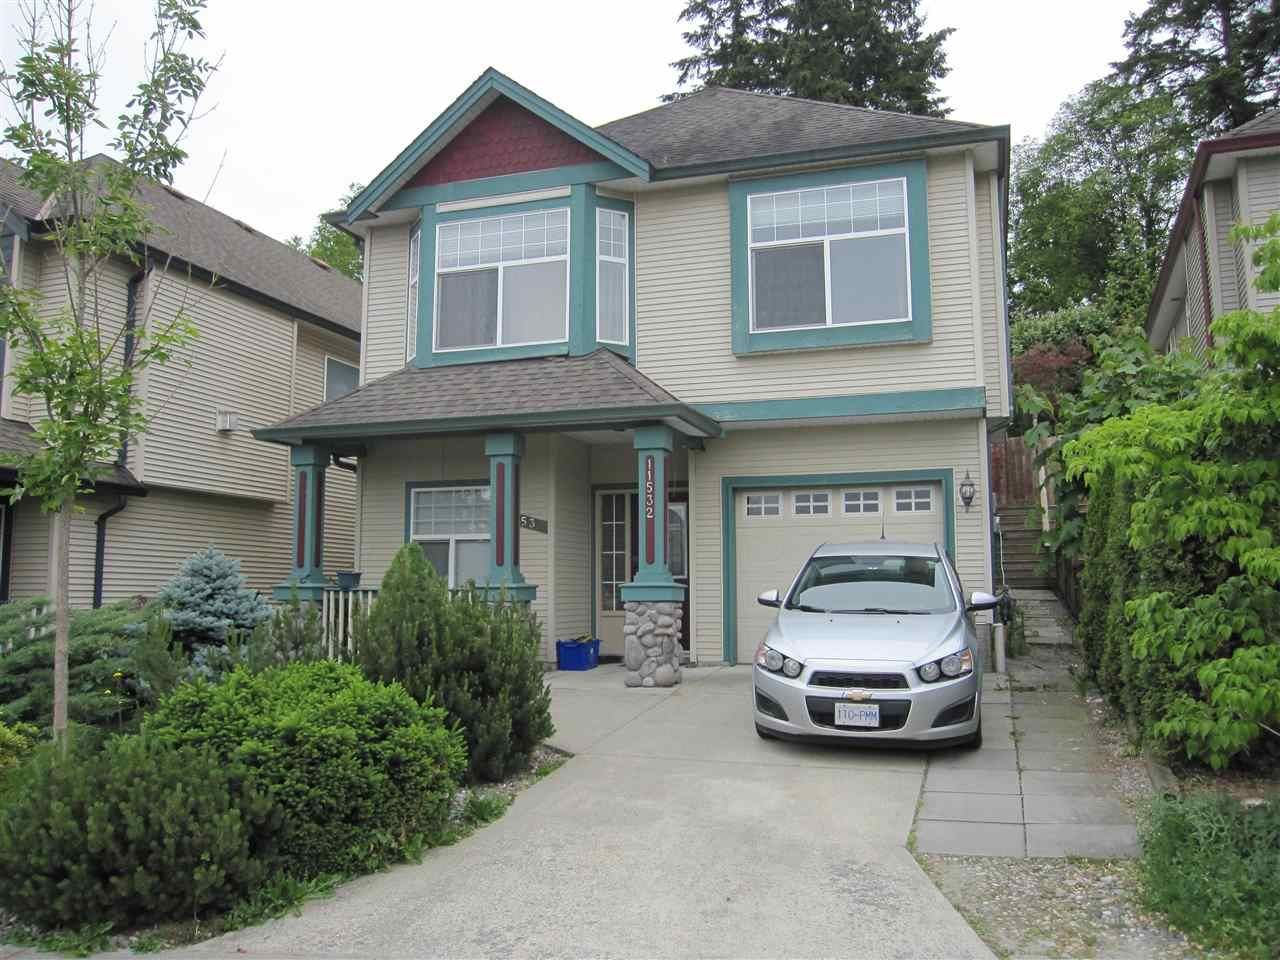 Photo 1: Photos: 11532 228 Street in Maple Ridge: East Central House for sale : MLS®# R2069865